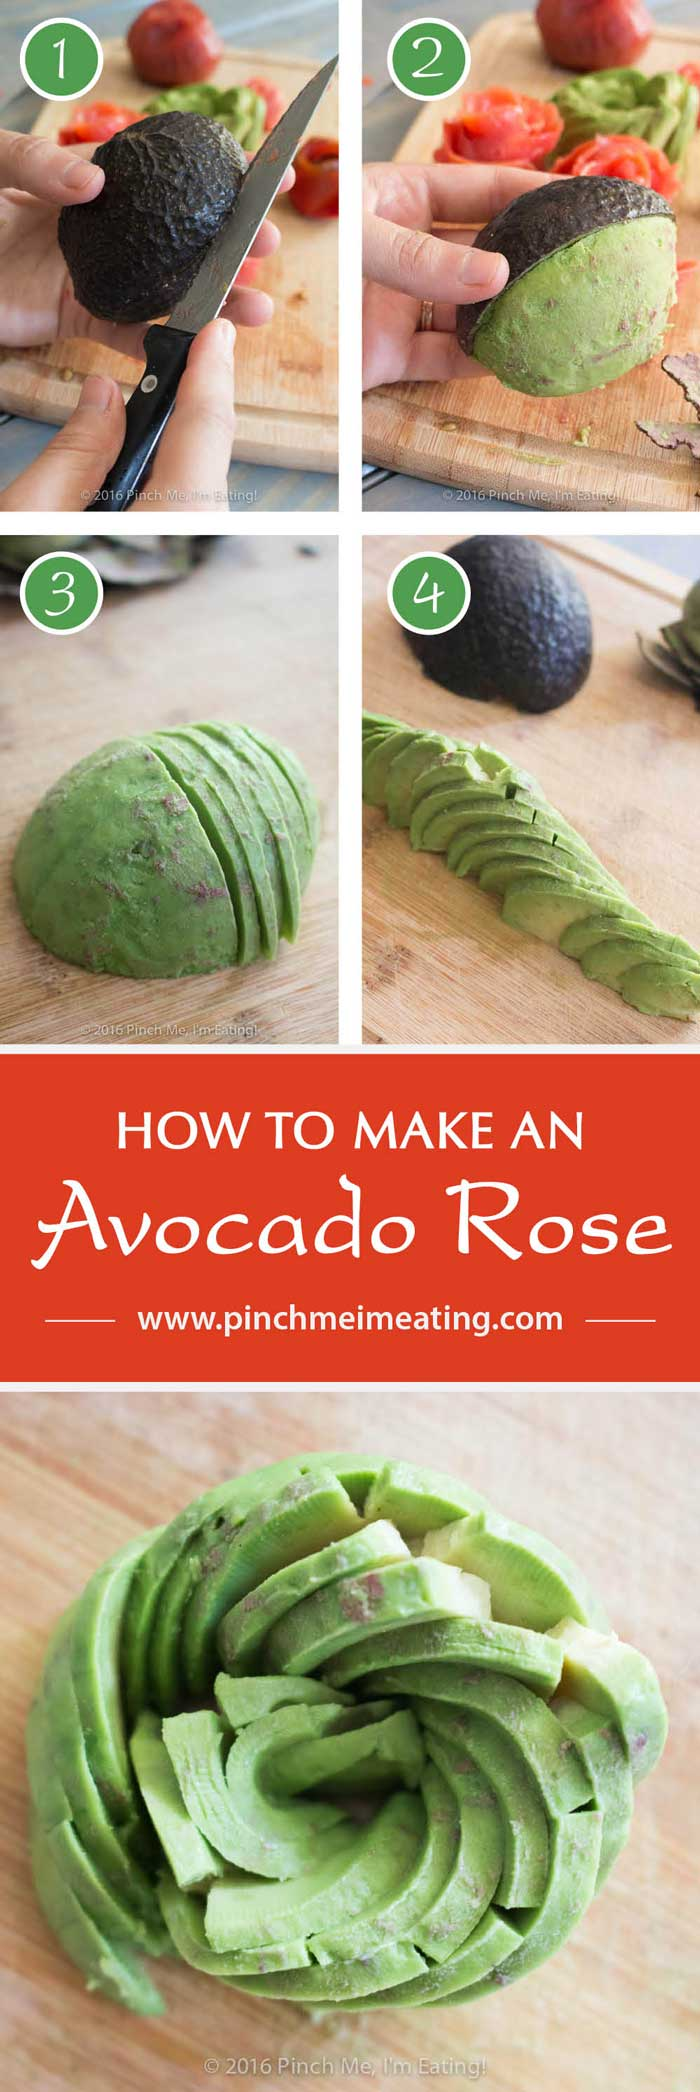 Smoked salmon, tomato, and avocado rose salad, including step-by-step instructions on how to make an avocado rose. | www.pinchmeimeating.com